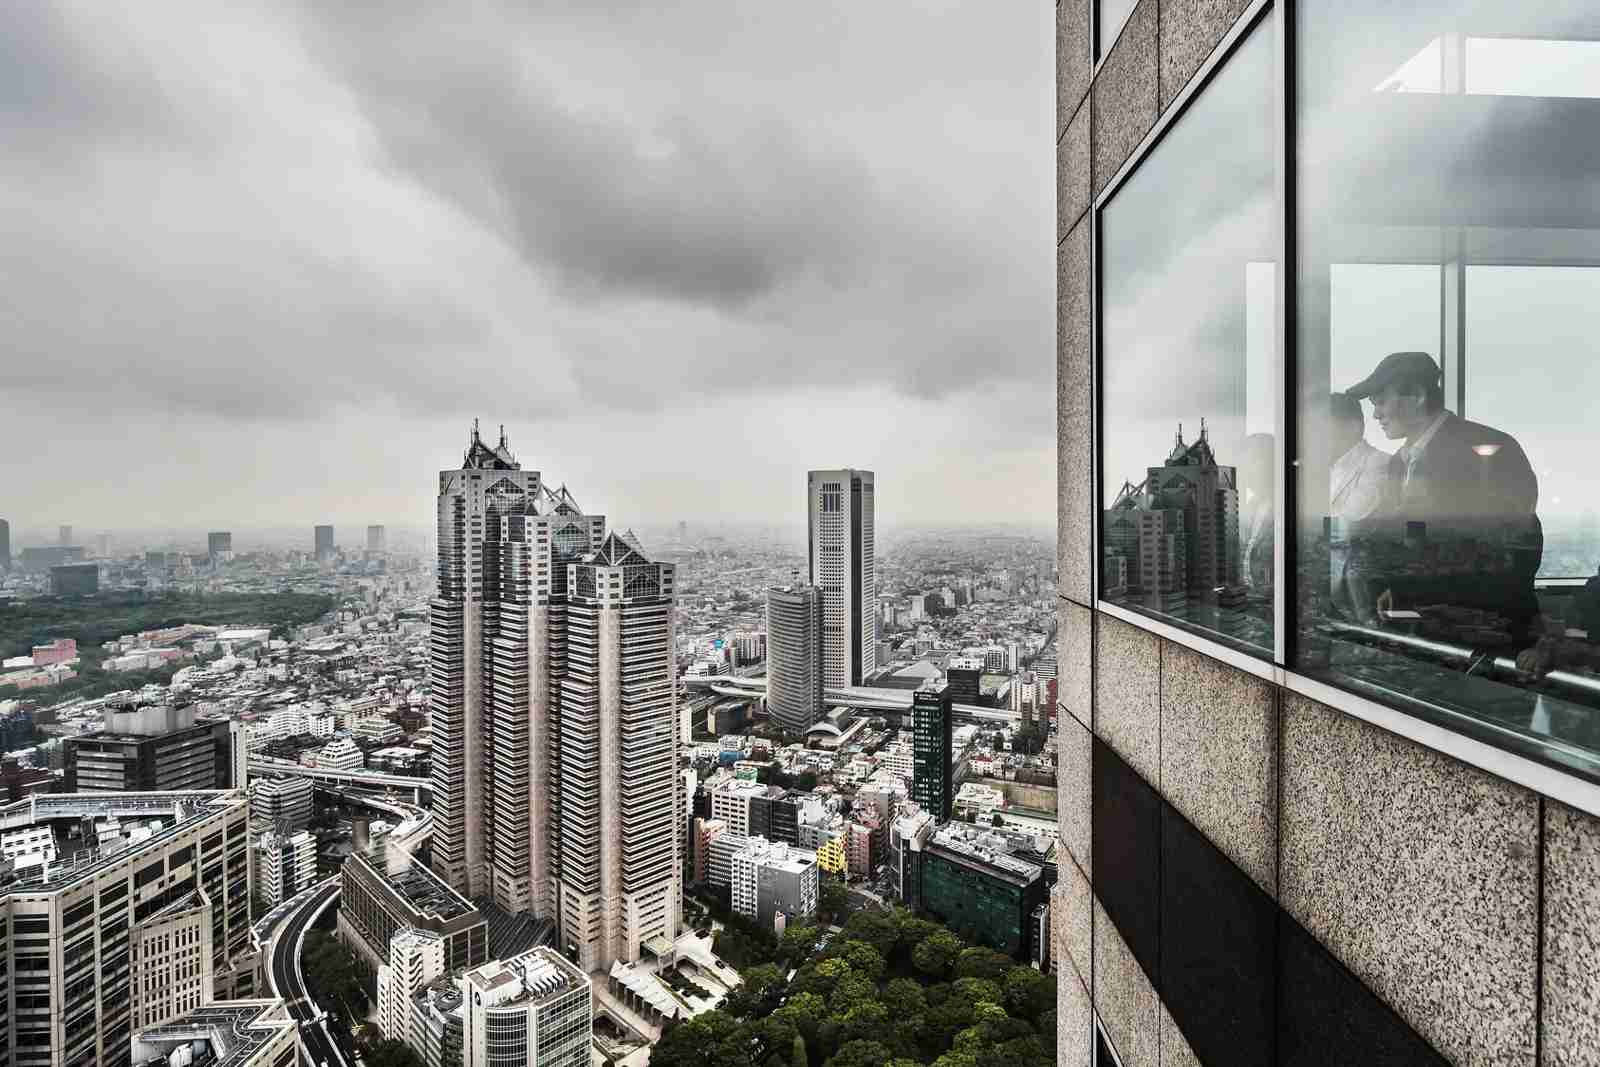 The Tokyo Metropolitan Government Building Observatories. (Photo by Atlantide-Phototravel/Getty Images)